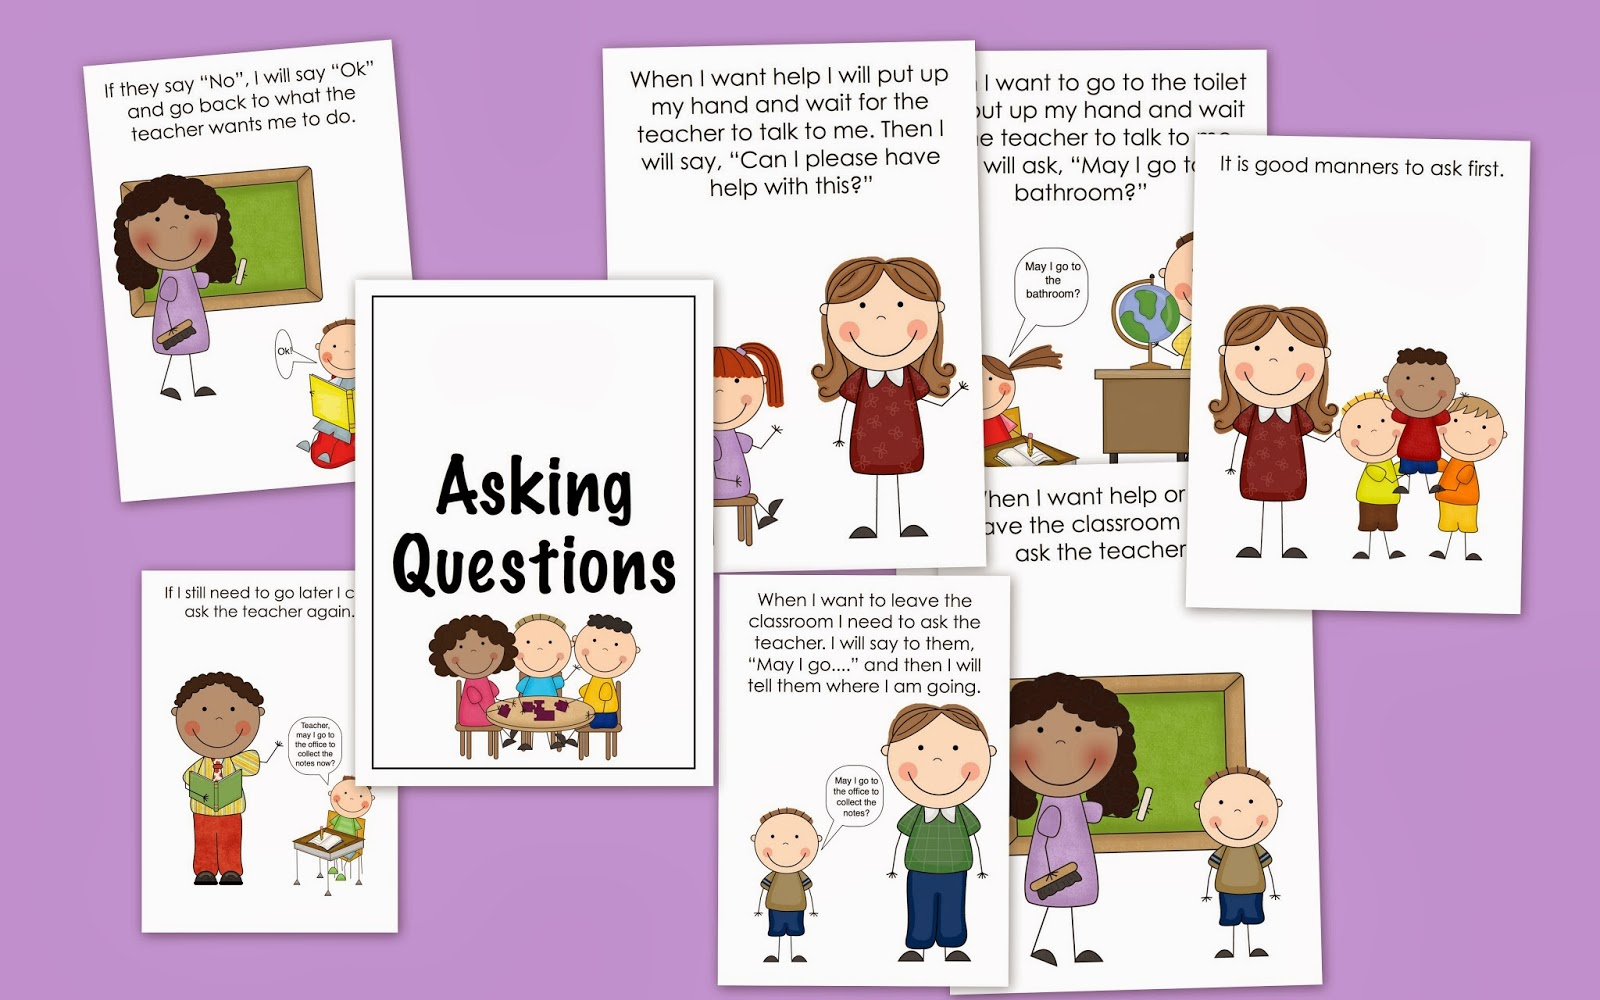 Where can i go to the bathroom - As Well As This Freebie Which You Can Find Here Download Image Teacher Can I Go To The Bathroom